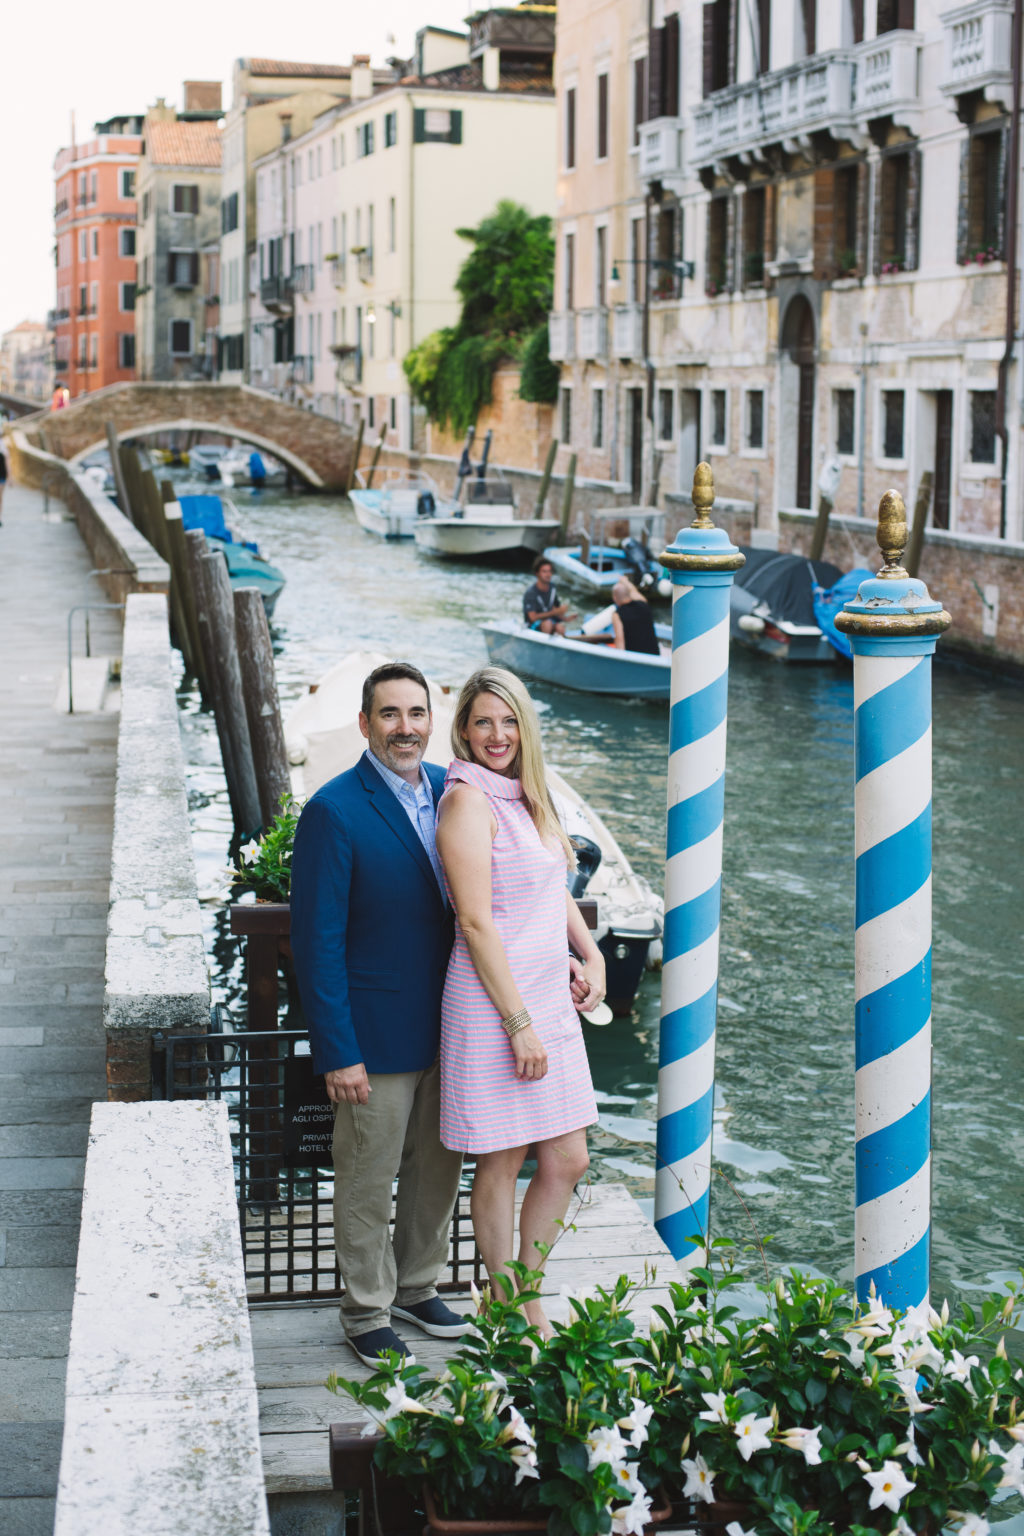 Couple on canal in Venice, Italy